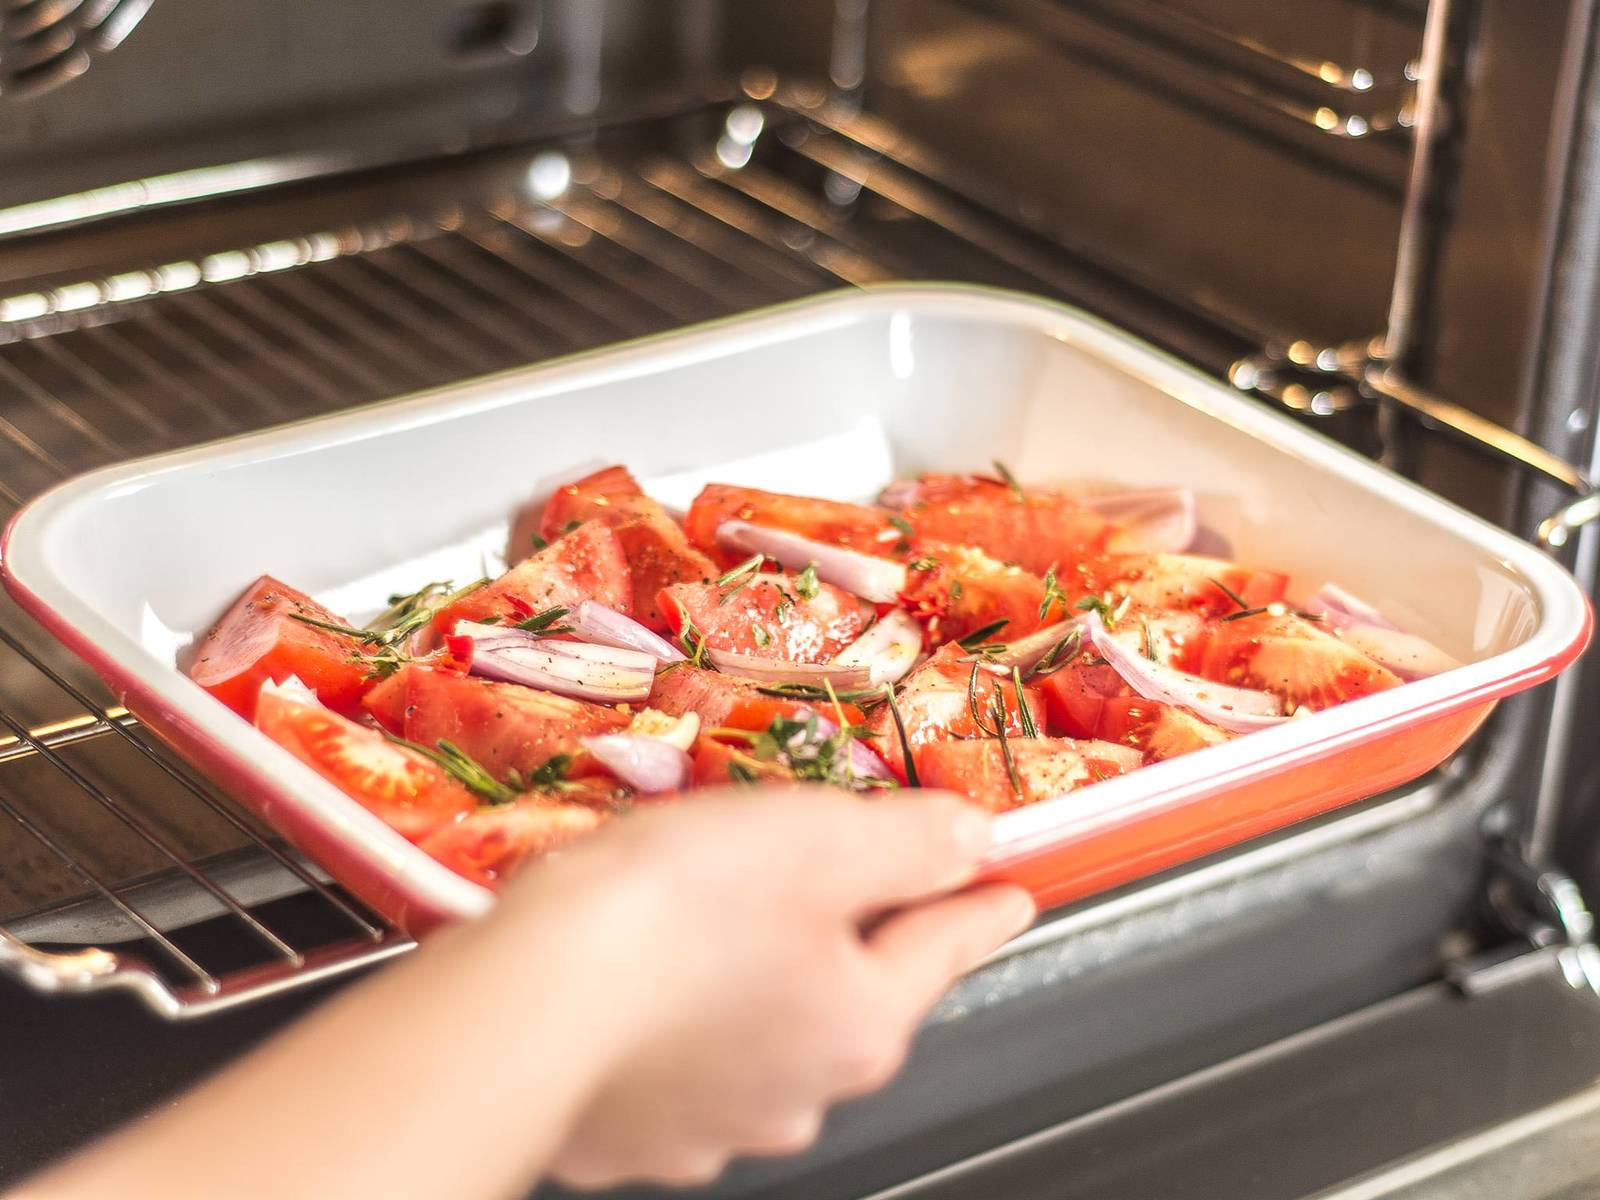 Place the shallots, garlic, tomatoes, thyme, rosemary, and chili into a baking dish. Season with olive oil, sugar, salt, and pepper and mix well. Roast in a preheated oven at 200°C/400°F for approx. 20 – 25  min.